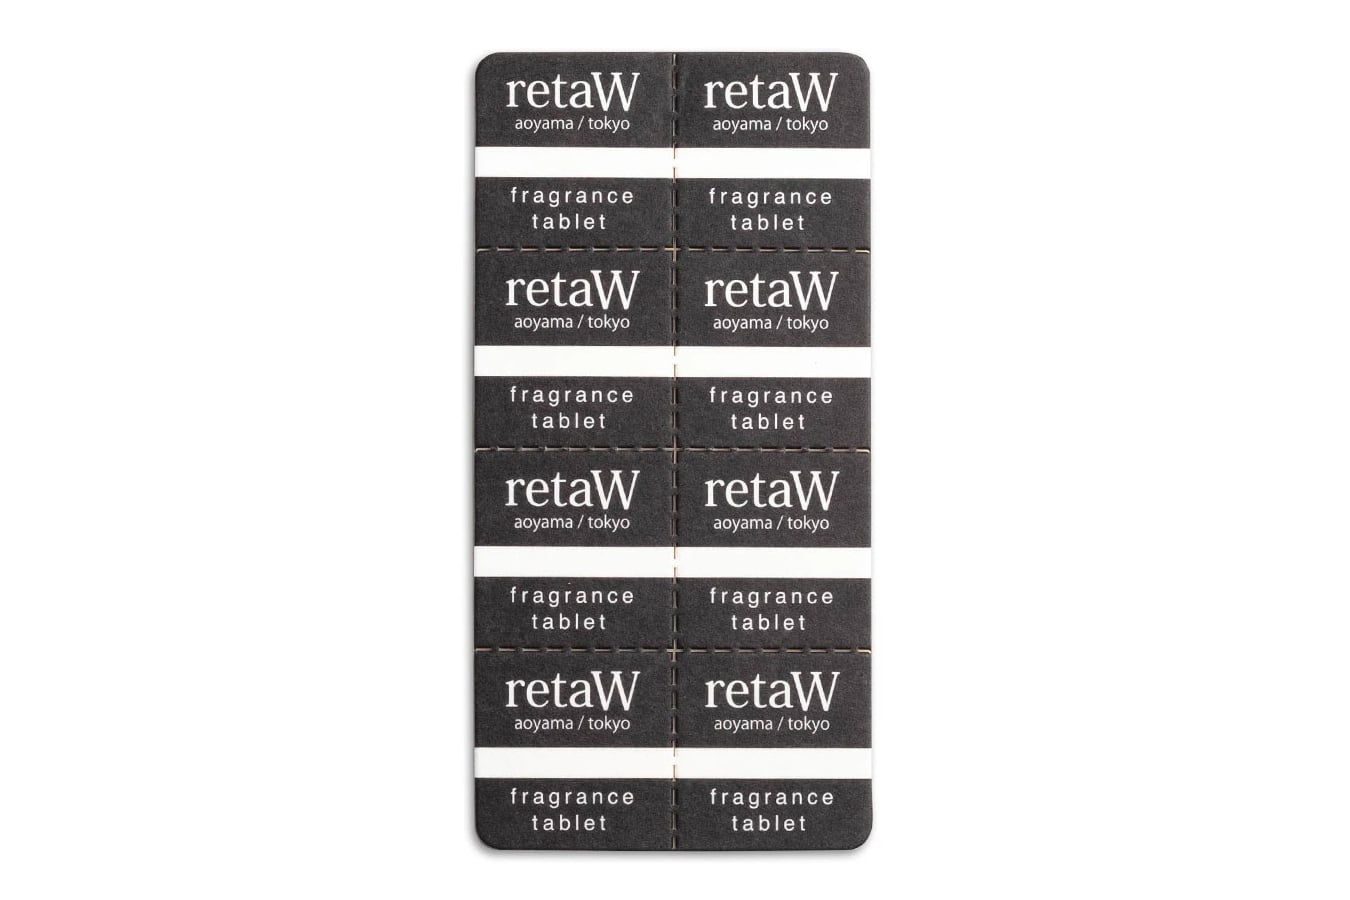 Uncrate supply retaw fragrance tablets